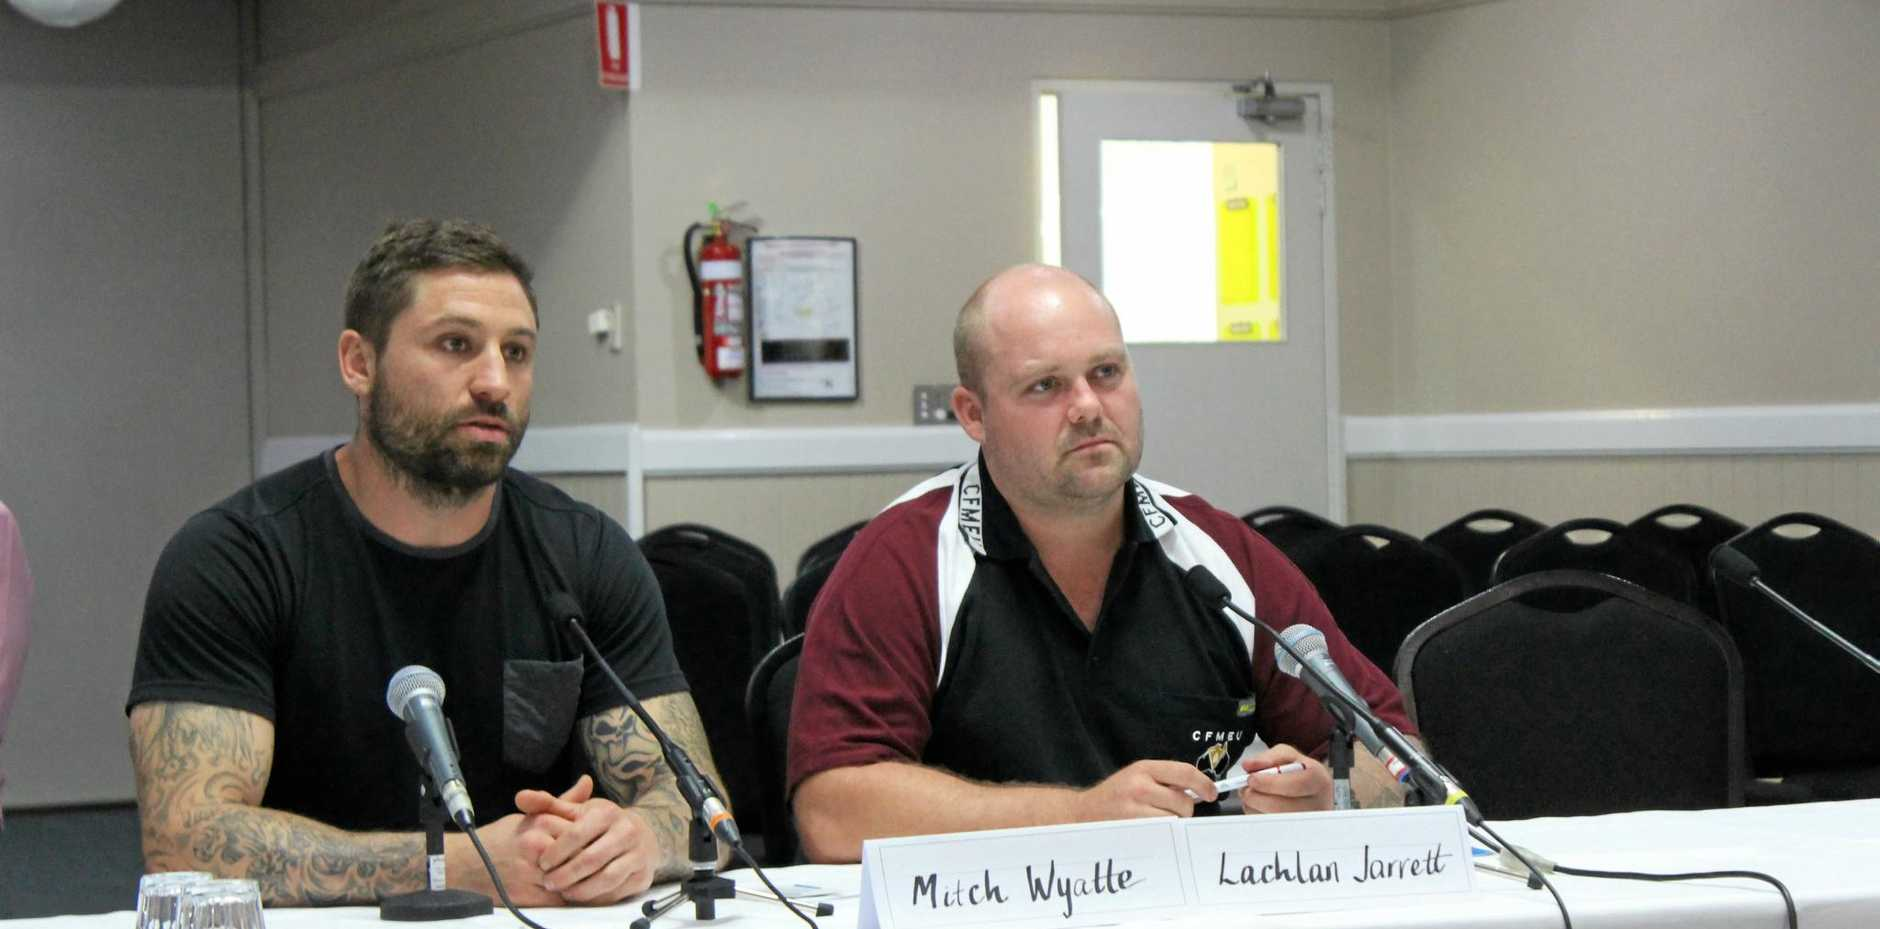 BLACK LUNG INQUIRY: Miners Mitch Wyatte and Lachlan Jarrett providing evidence at a hearing in Emerald on Thursday night.